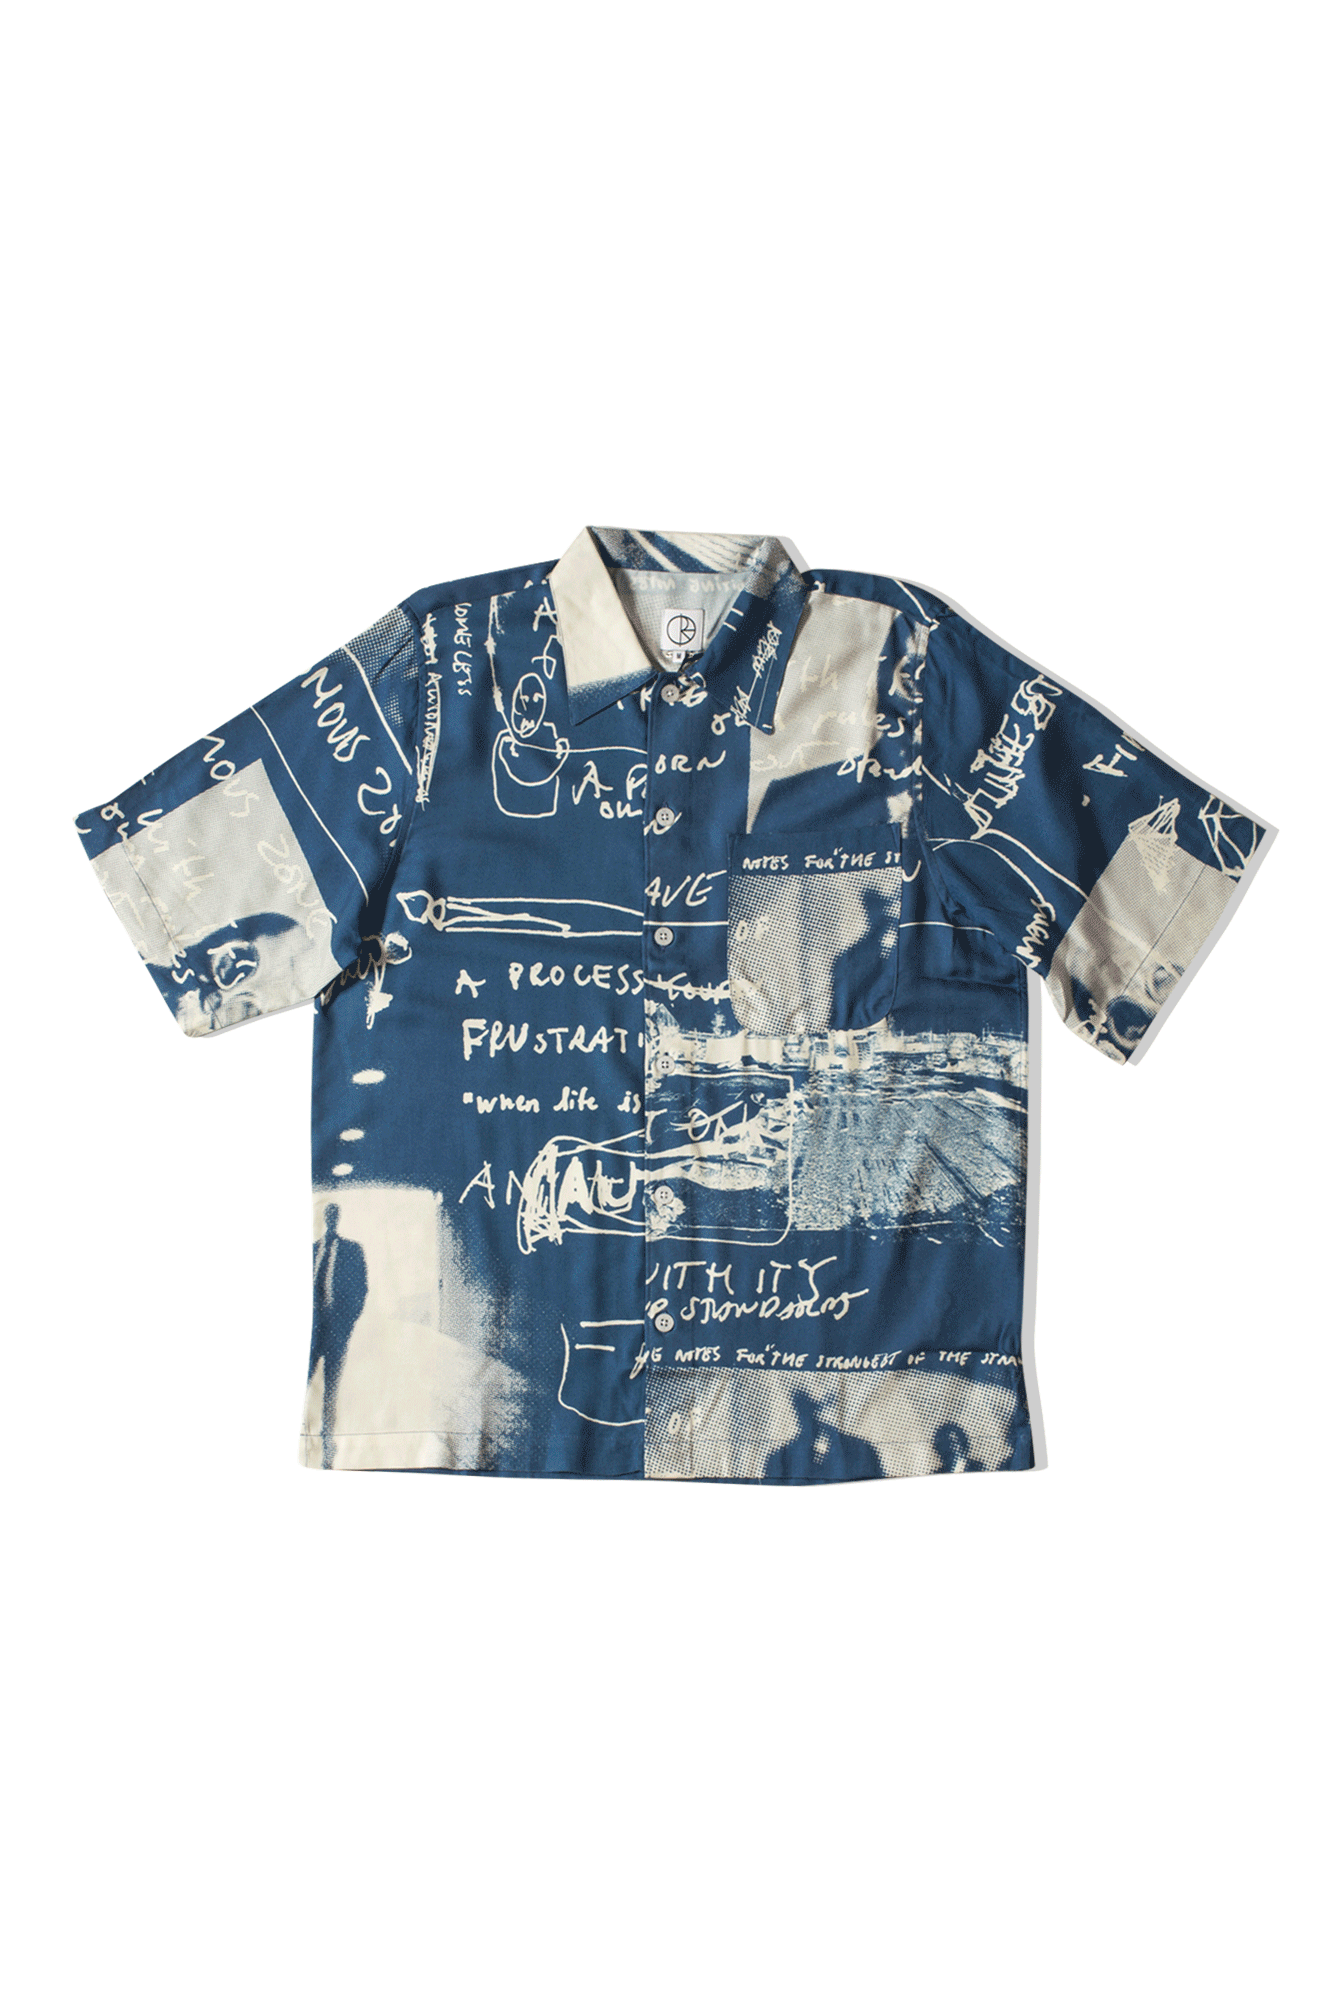 Polar Camicie Art Shirt ''Strongest Notes'' Blu POL- ARTSH#STRONG#BLUE#S - One Block Down